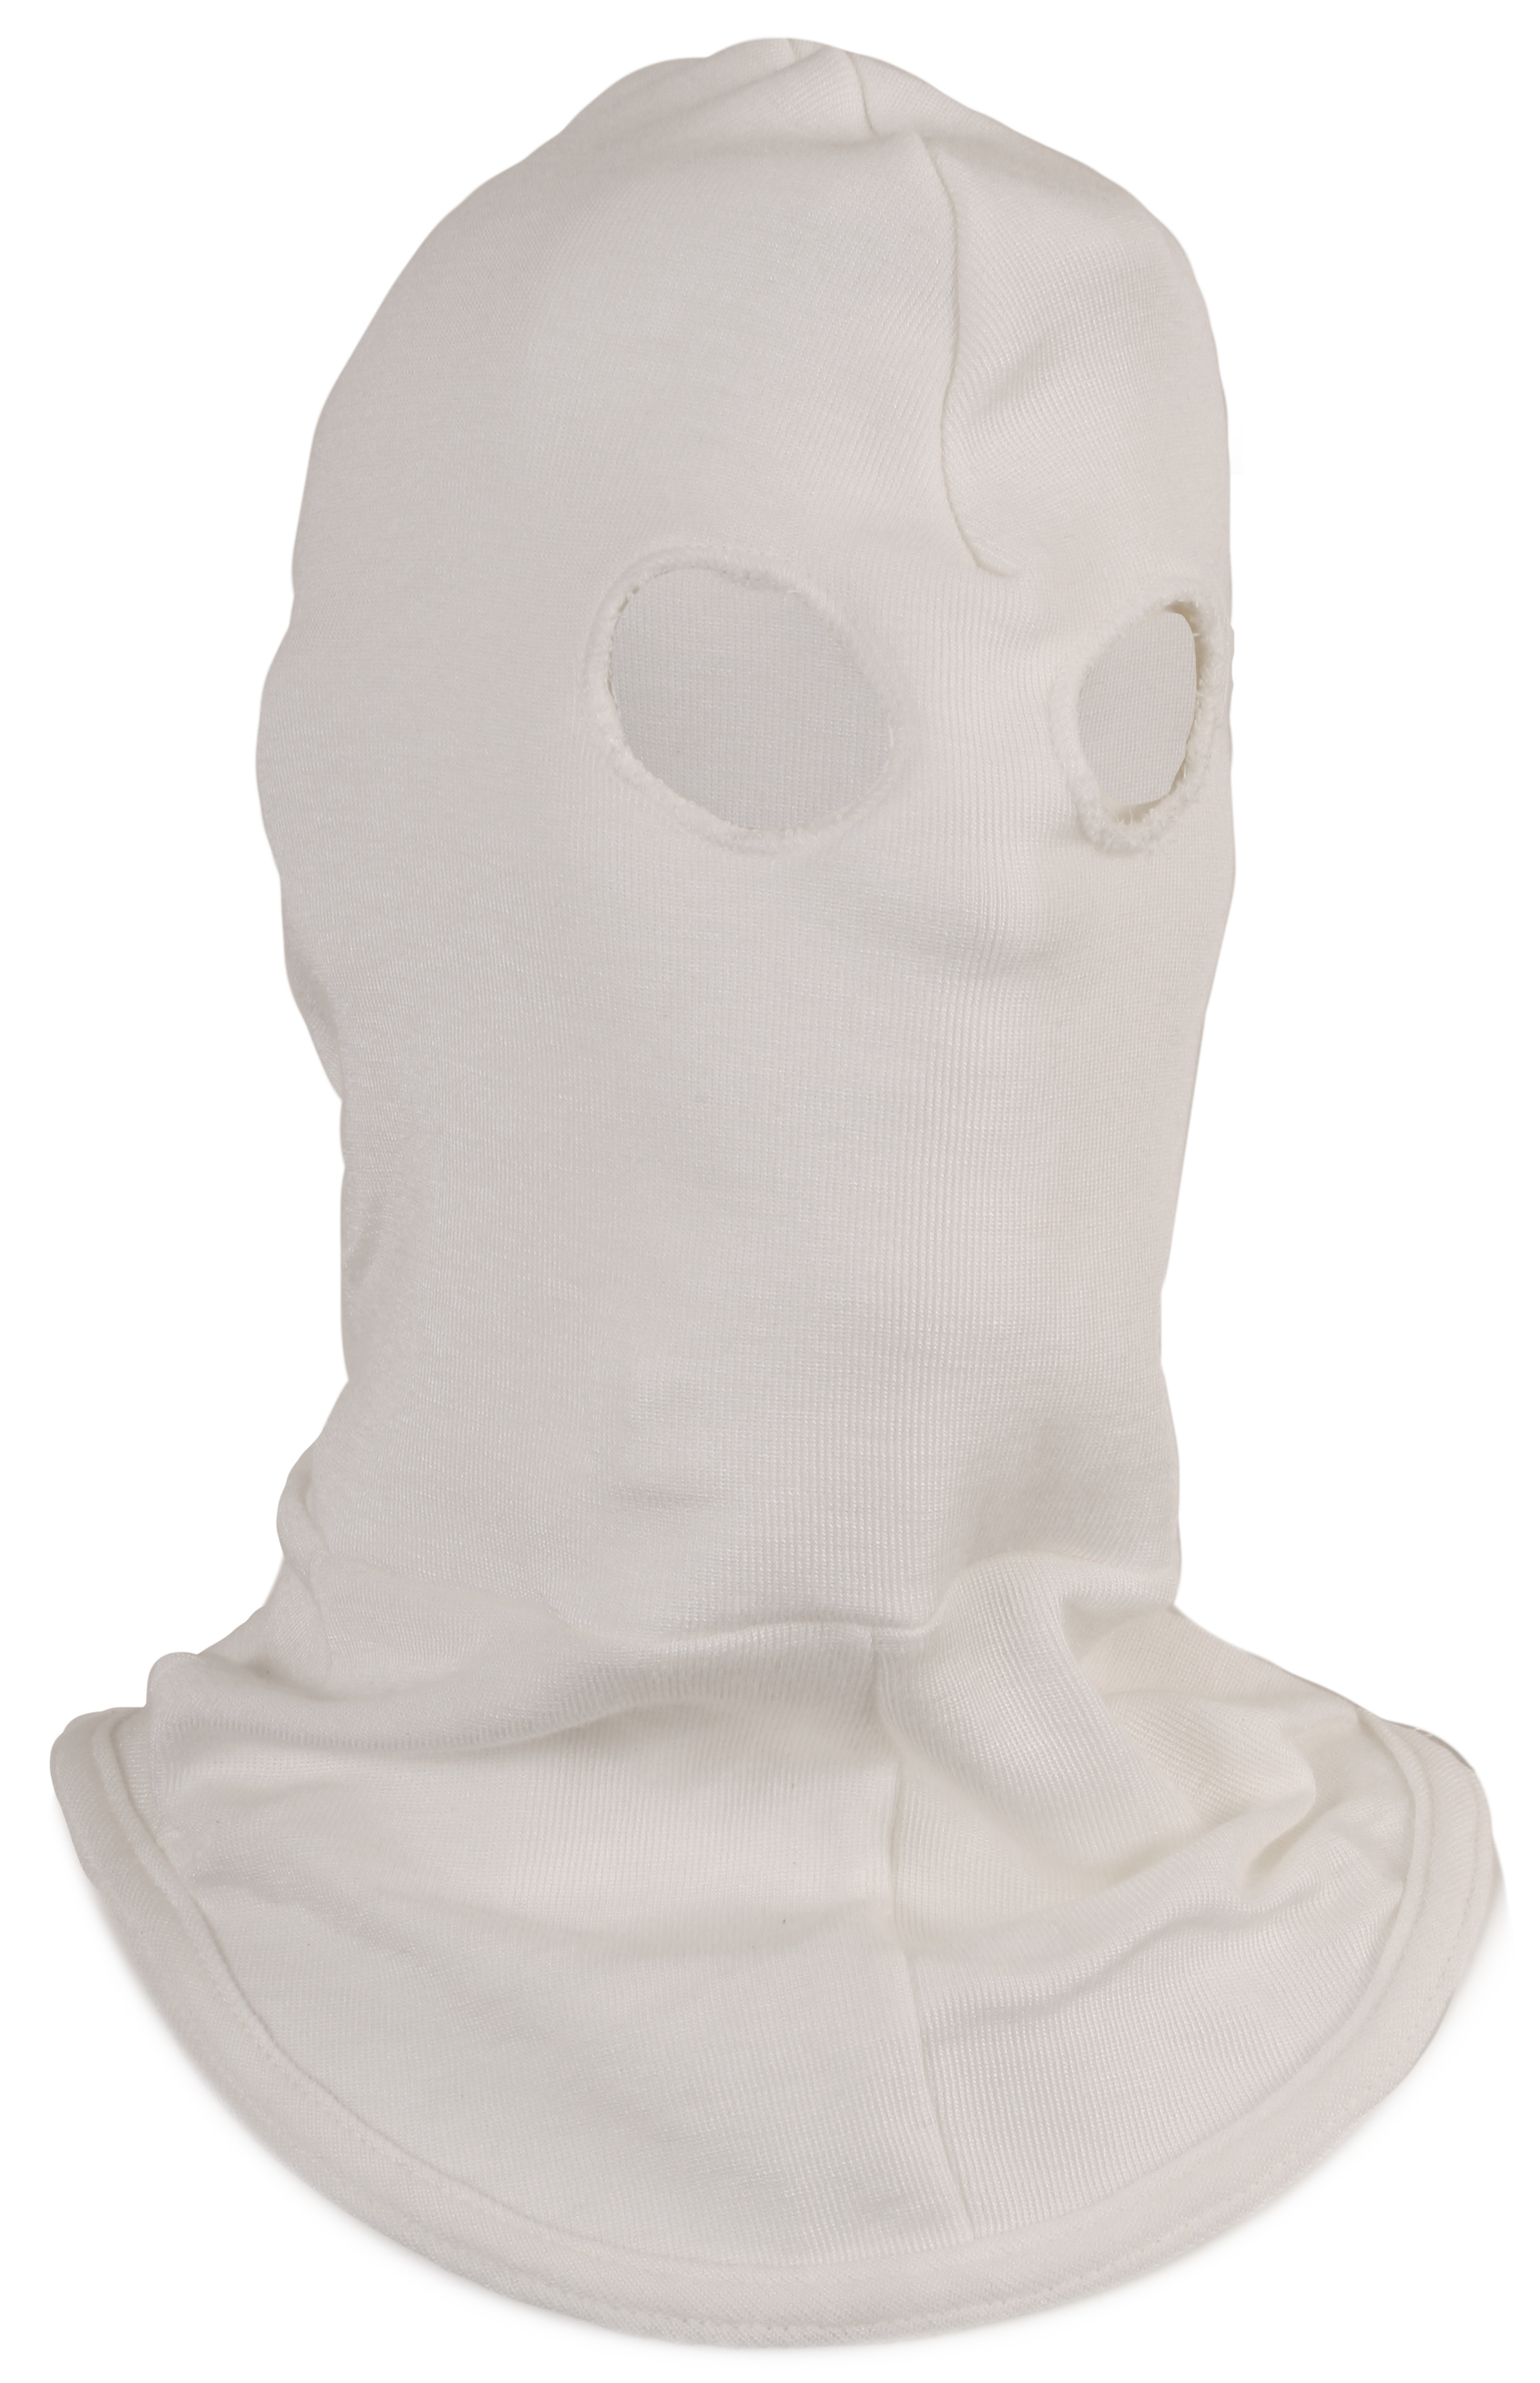 High Heat Knit Hood with Eyeholes in Nomex - Fire Resistant